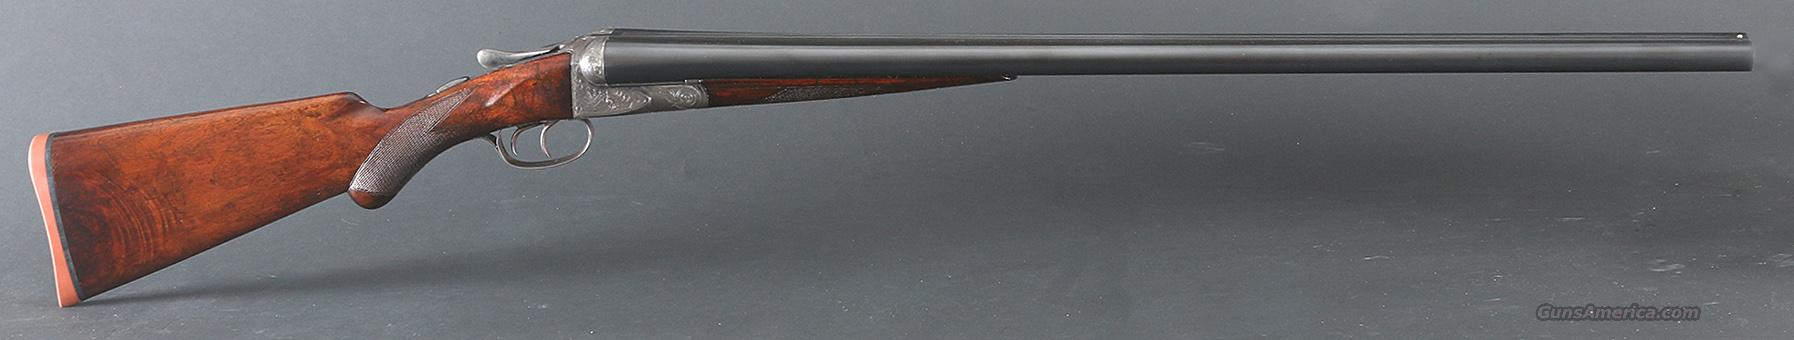 A.H. Fox A Grade Shotgun  Guns > Shotguns > Fox Shotguns